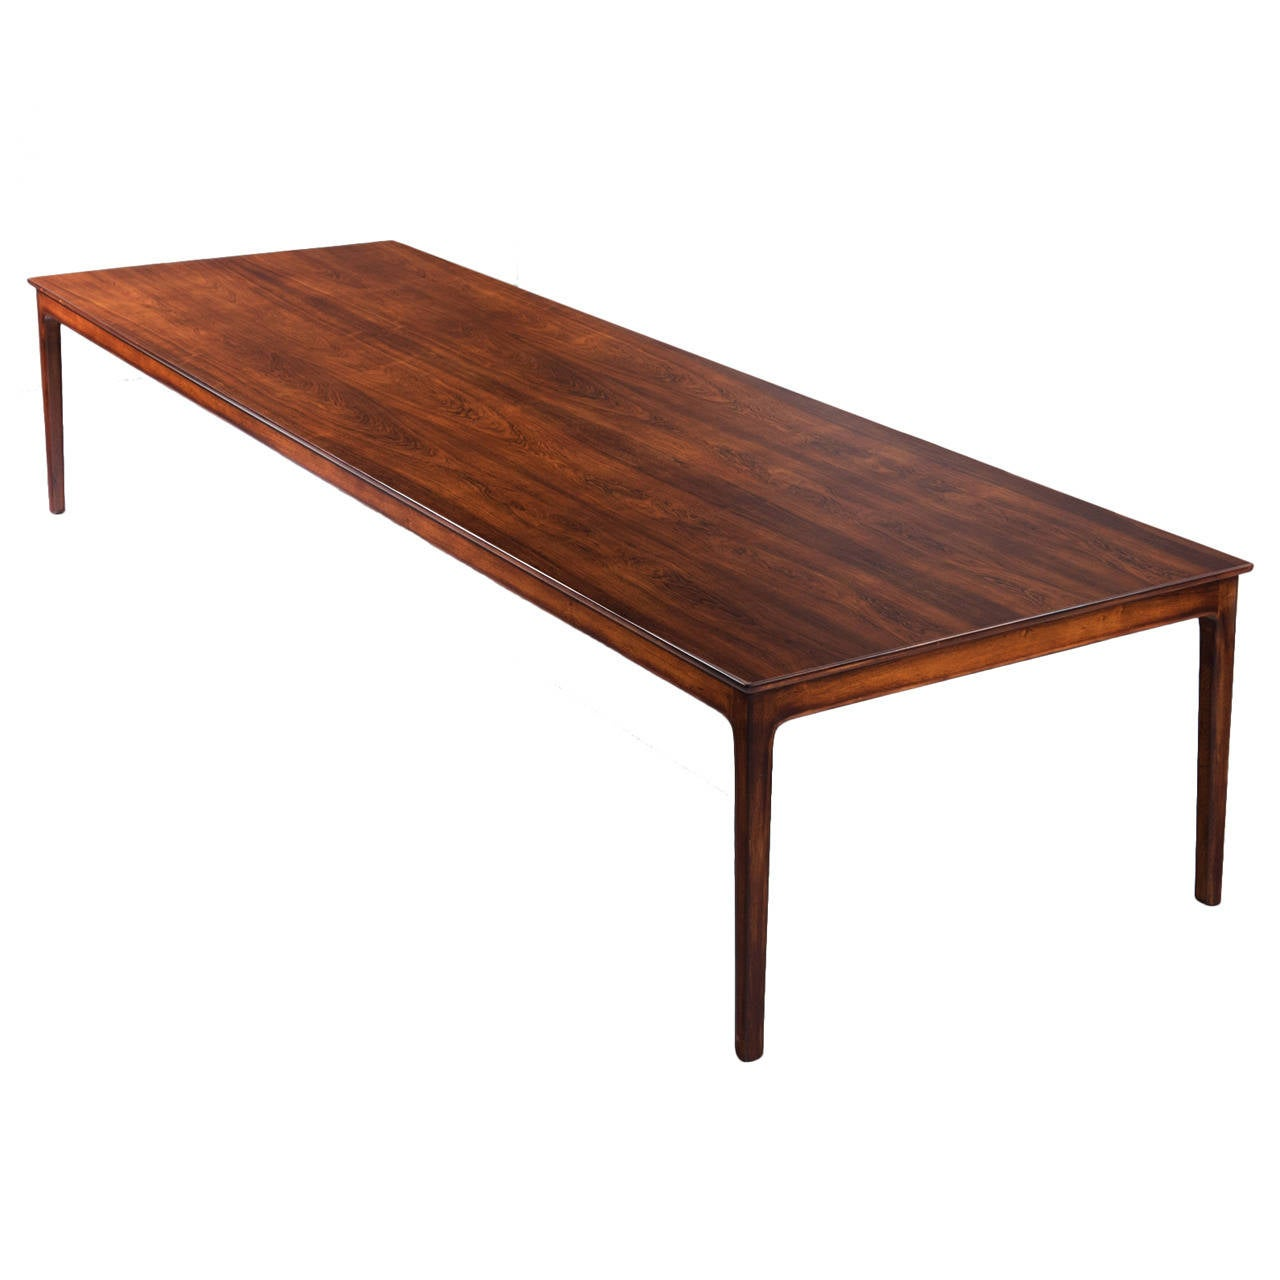 Extremely Long Rectangular Rosewood Table by Ole Wanscher  : attachment64852l from www.1stdibs.com size 1280 x 1280 jpeg 66kB